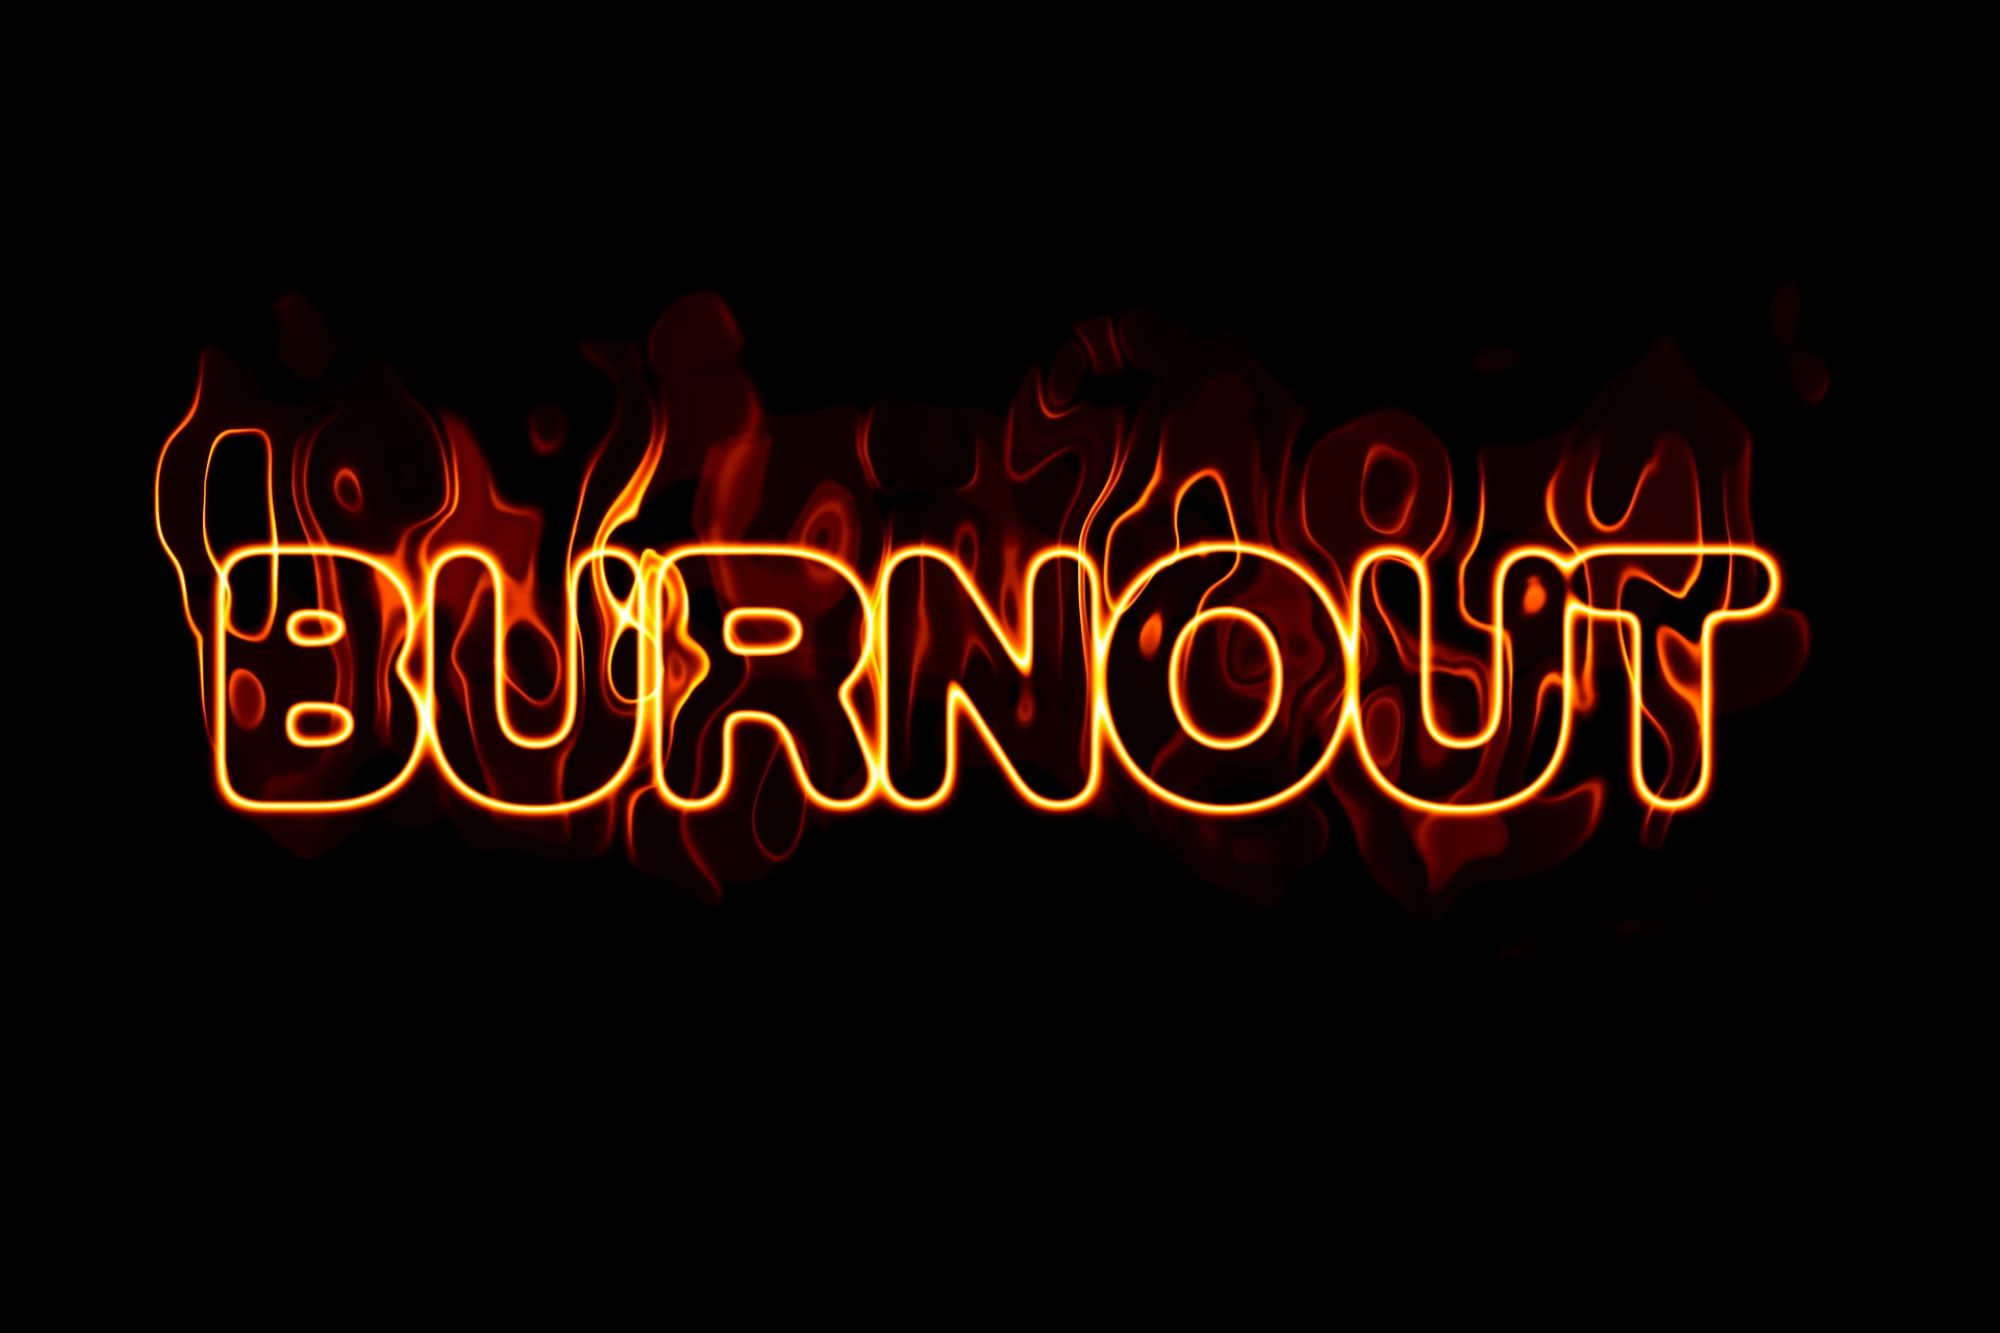 Black background with the word Burnout in neon letters and flames. This is to signify that Burnout and Imposter Syndrome are often linked.